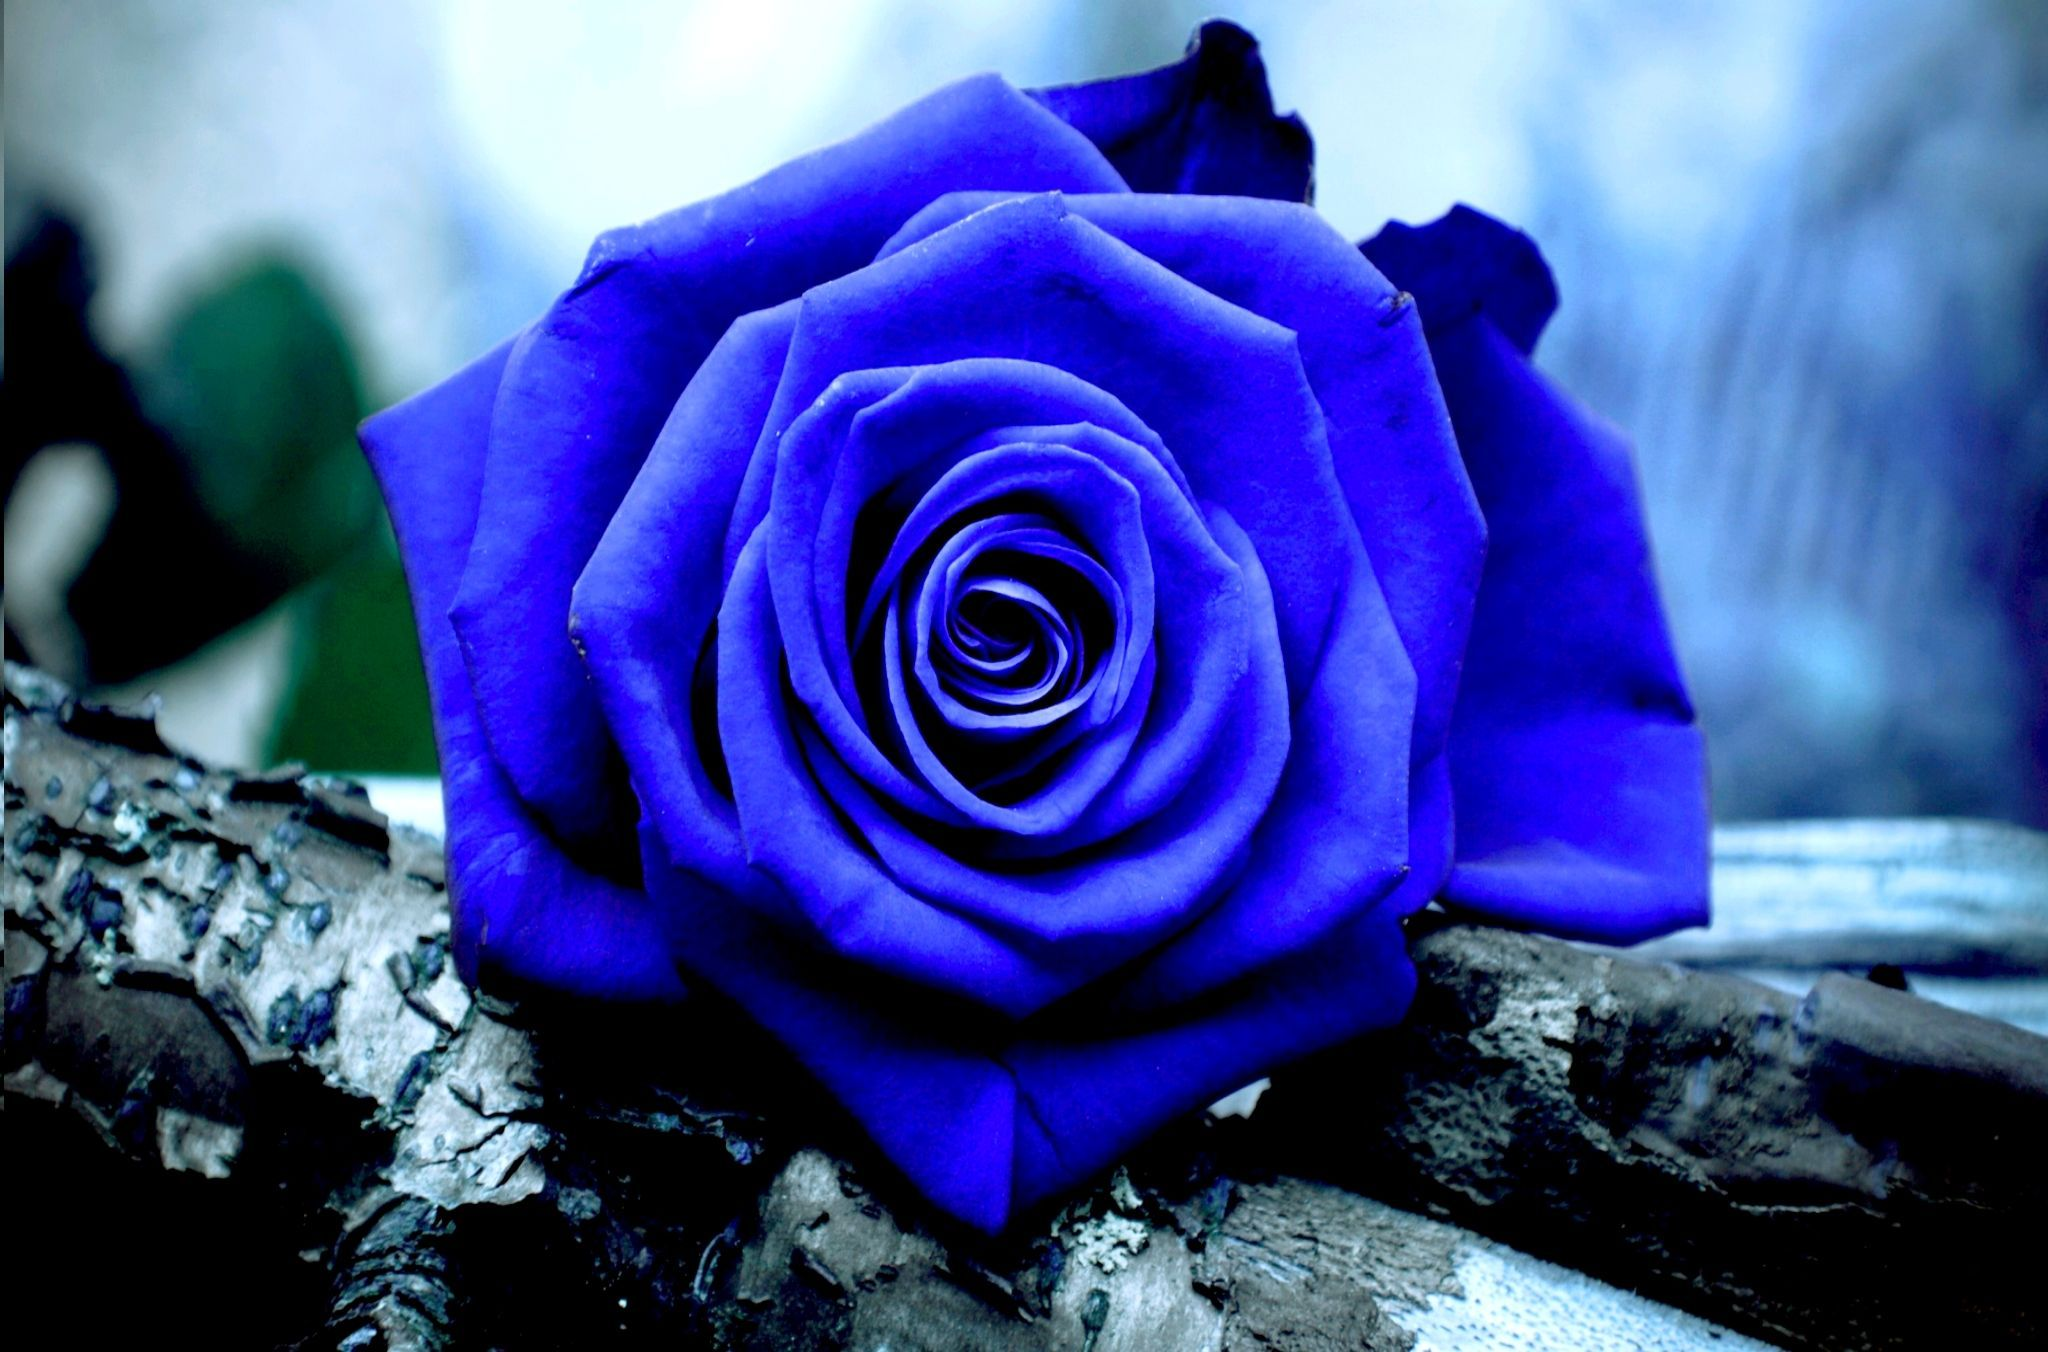 Blue Rose Wallpapers - Top Free Blue Rose Backgrounds ...